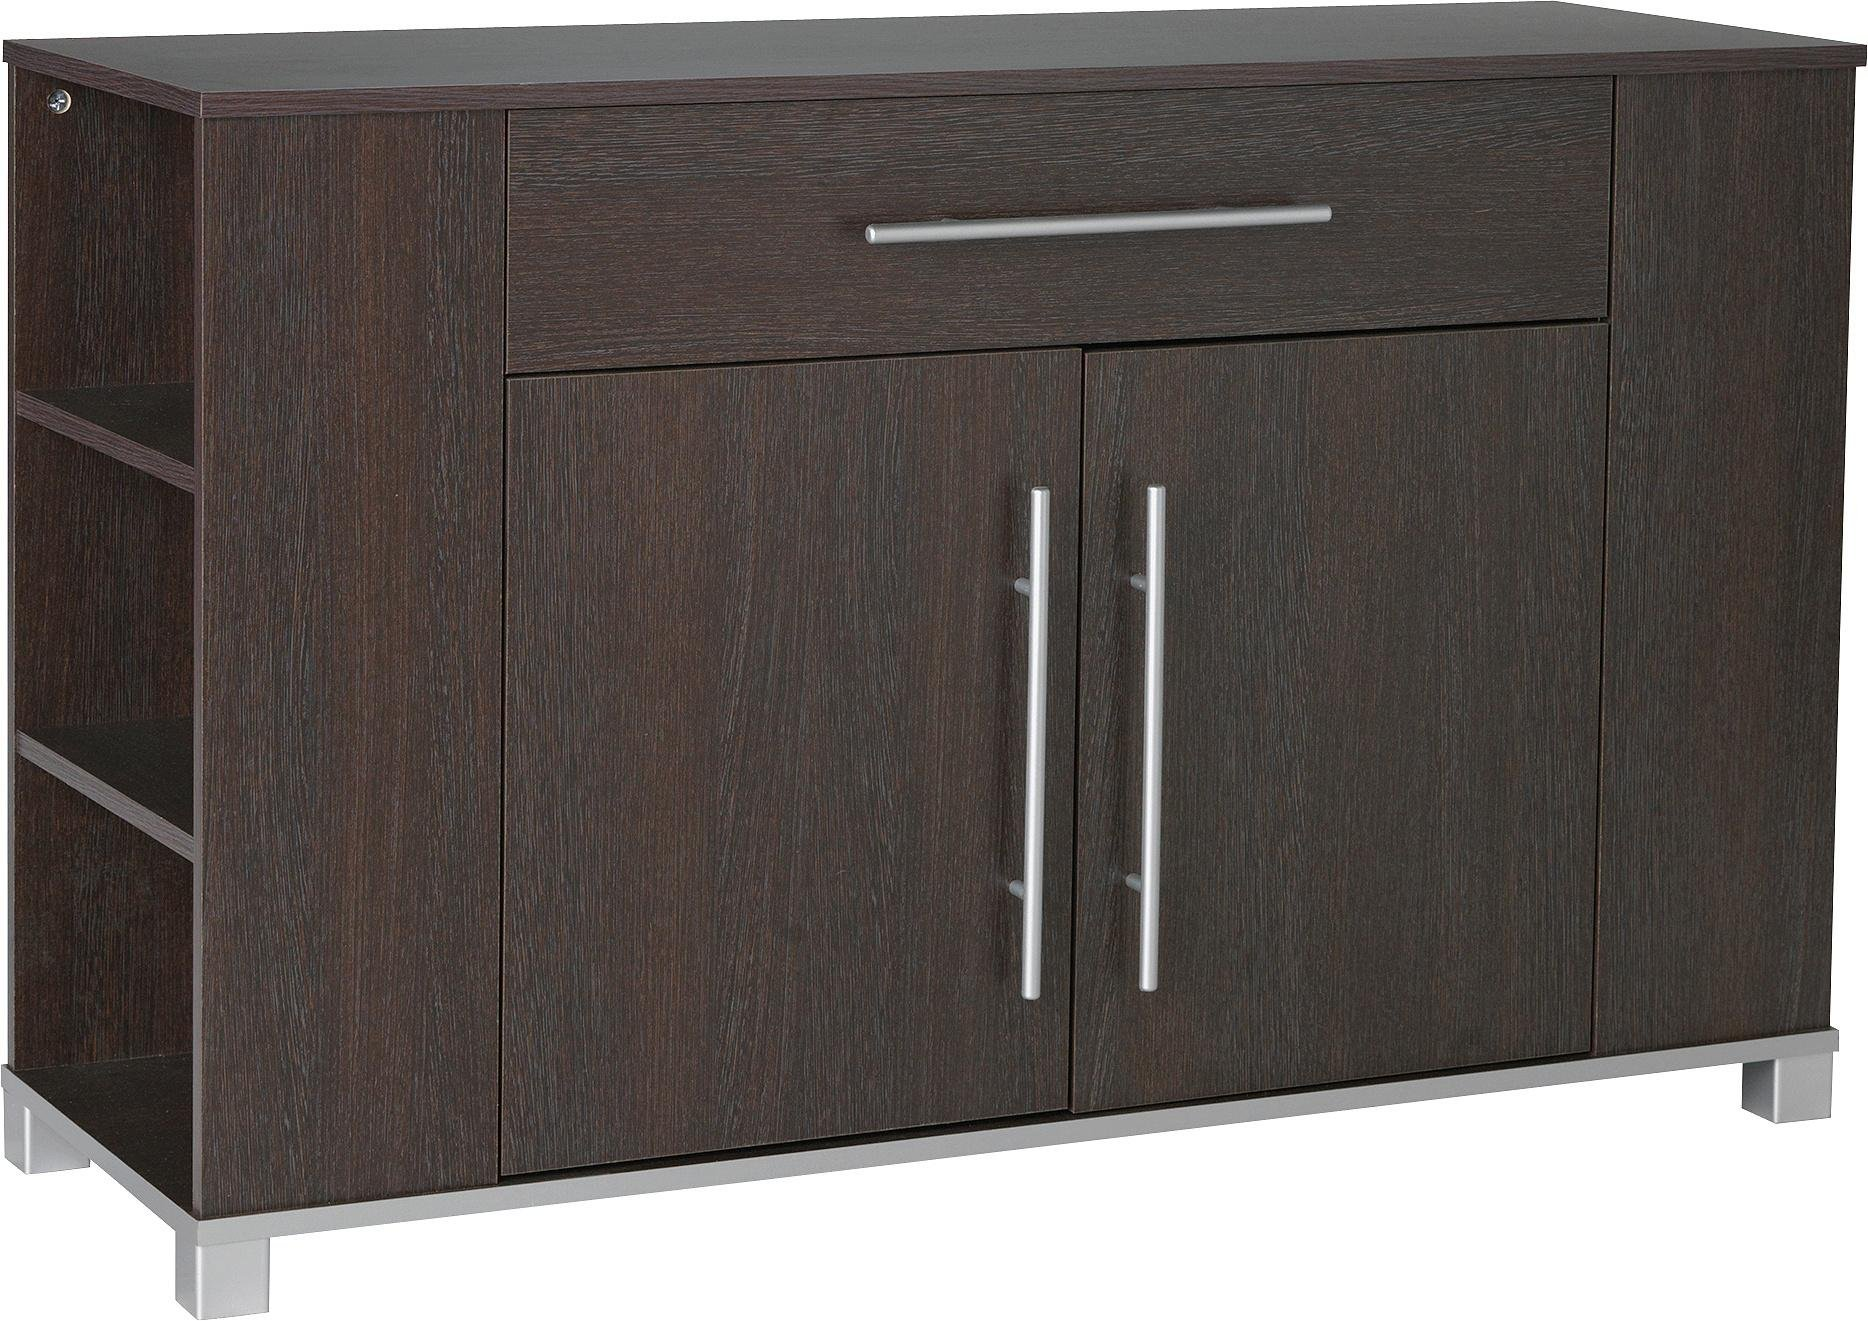 Sale on home hygena minsk 2 door 1 drawer sideboard wenge effect home by argos now available o - Sideboard wenge ...